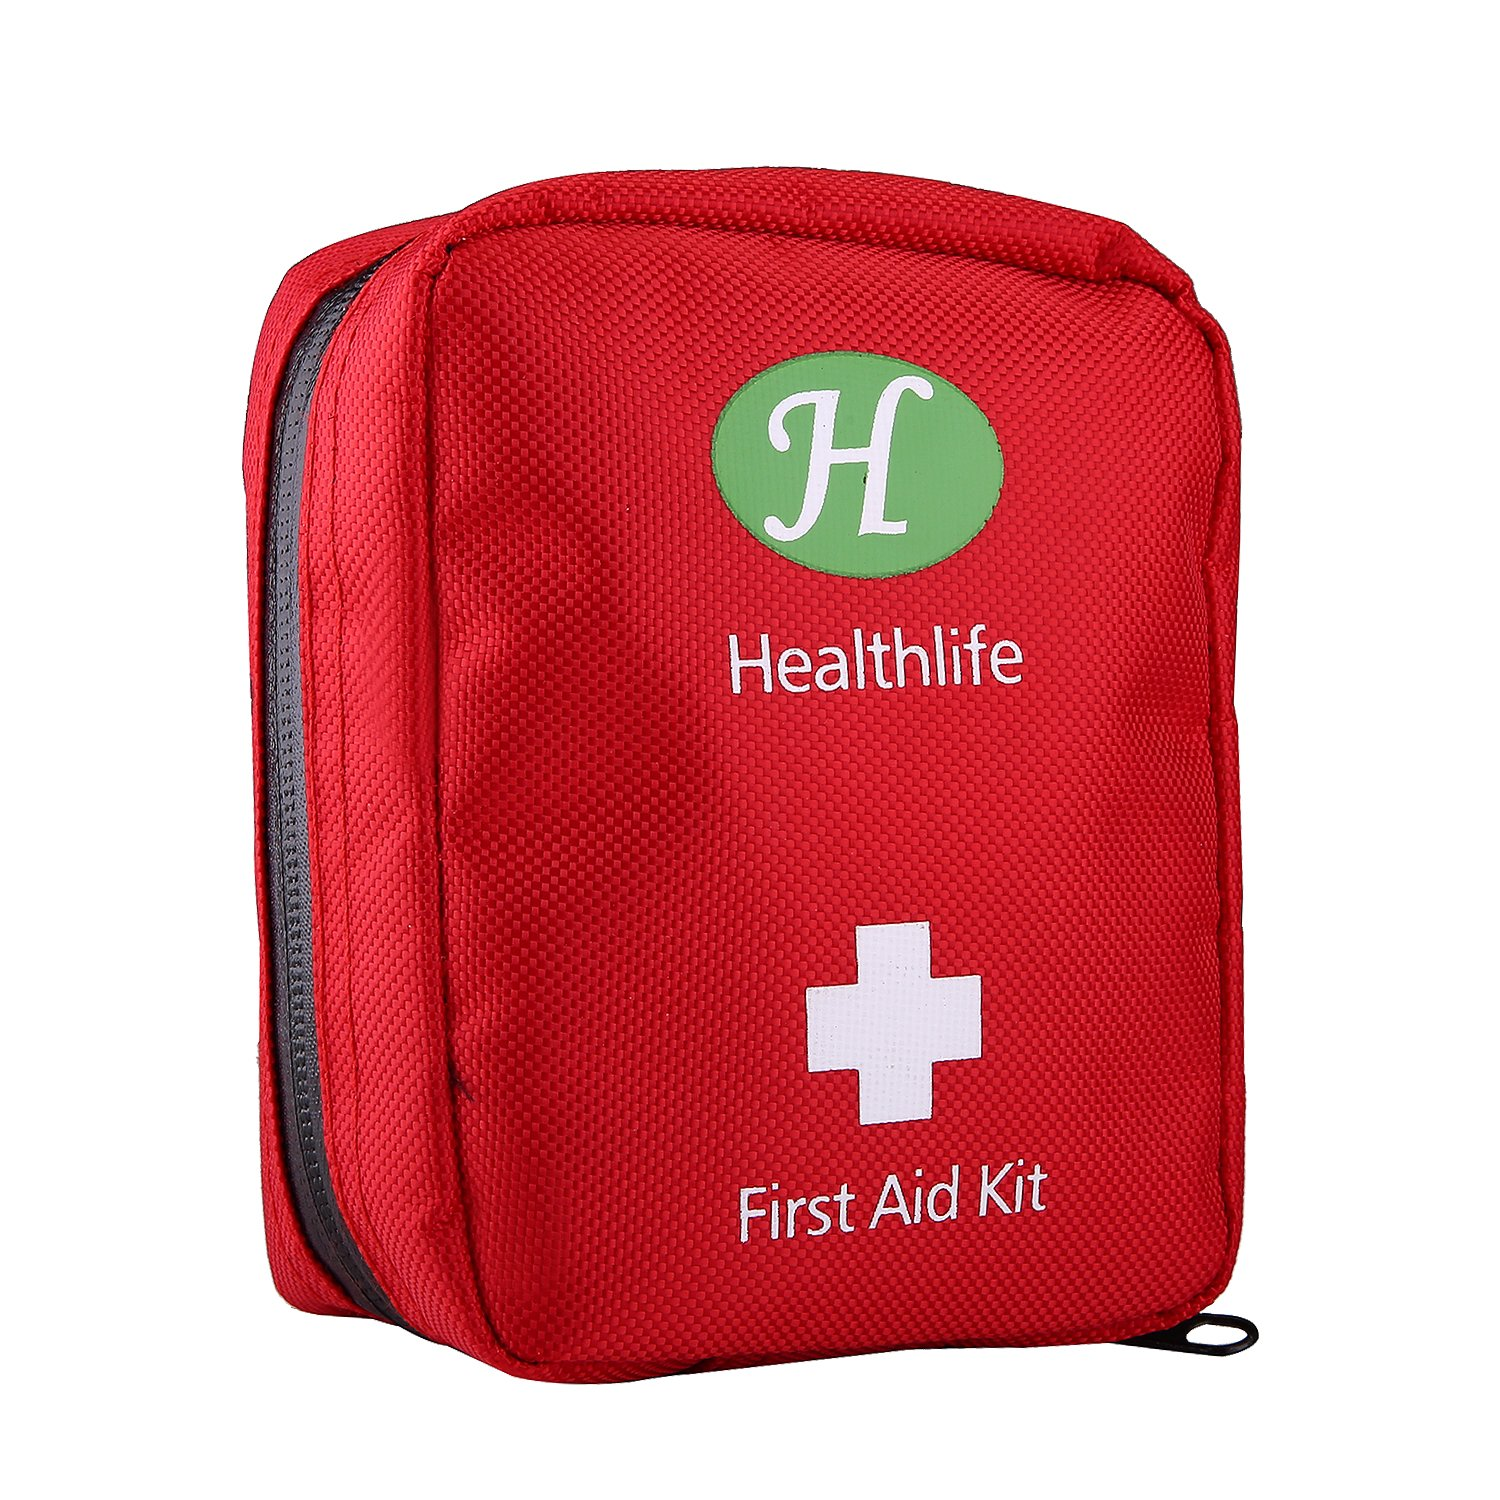 HealthLife Mini First Aid Kit,25 Pieces Lightweight Medical Emergency Bag Small Portable Survival tools Pack for Emergencies at Home Car Camping Workplace Traveling Adventures Sports Hiking